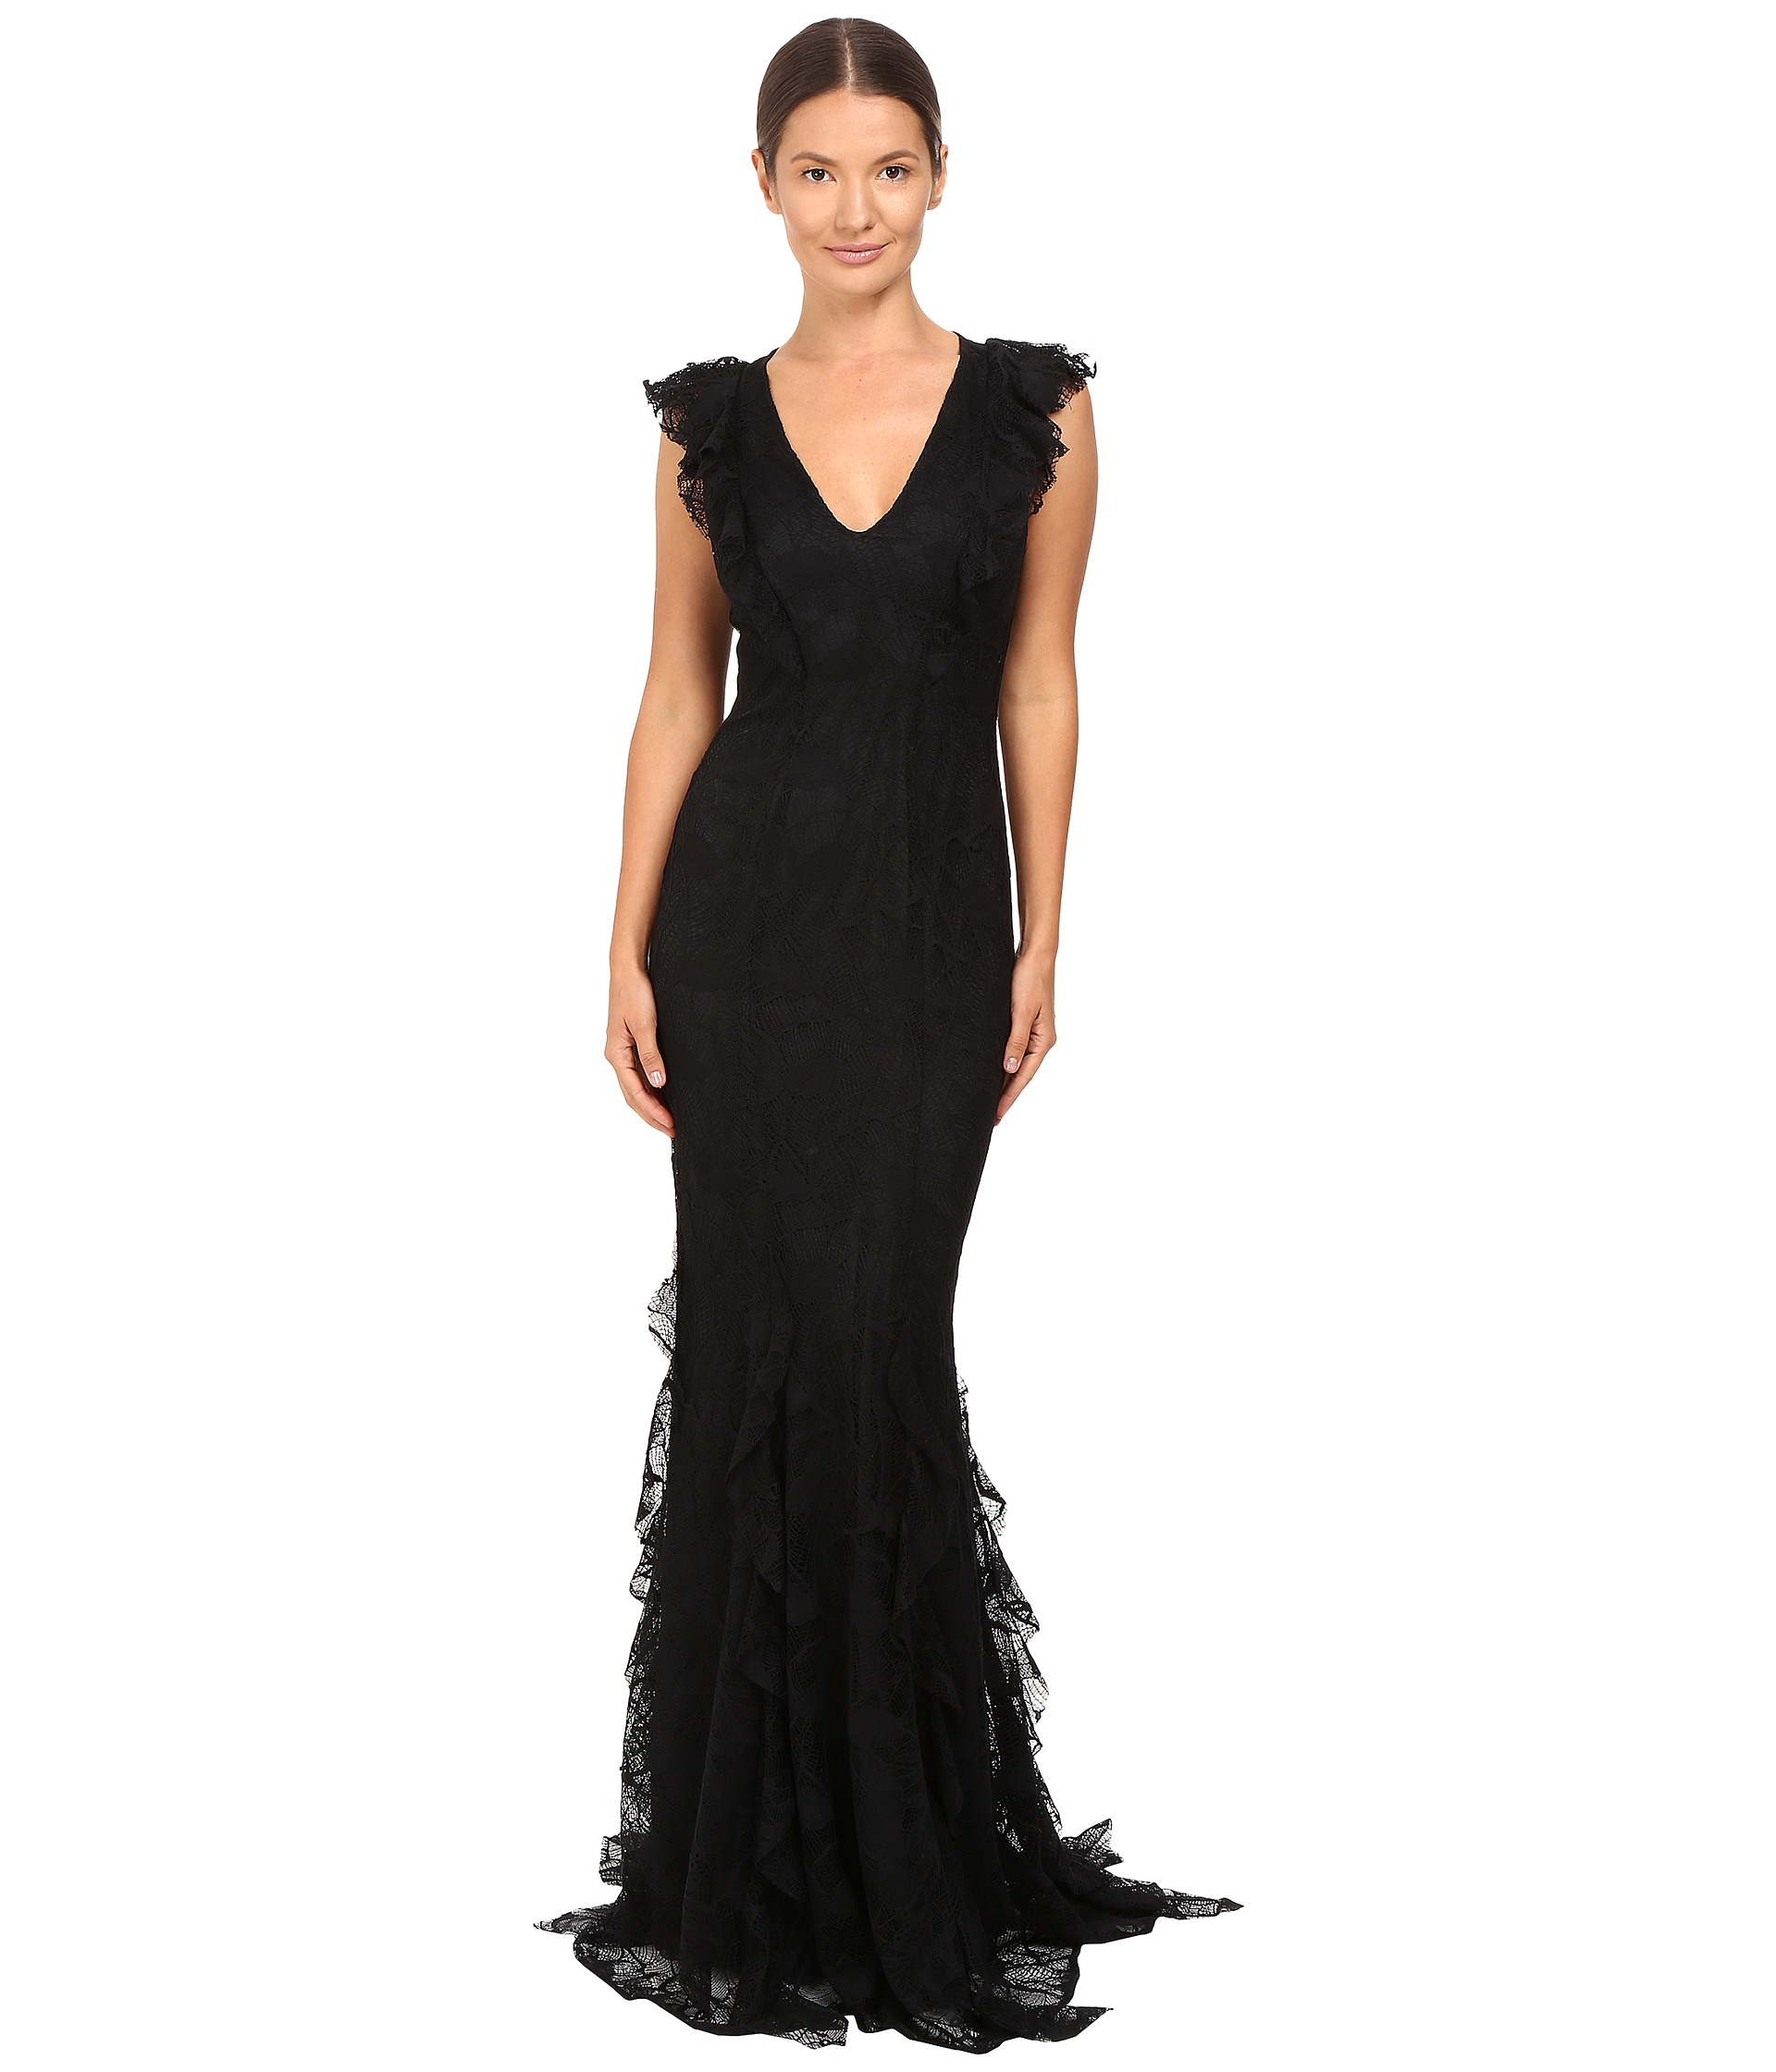 Zac zac posen josephine gown free shipping for Zac posen wedding dresses sale